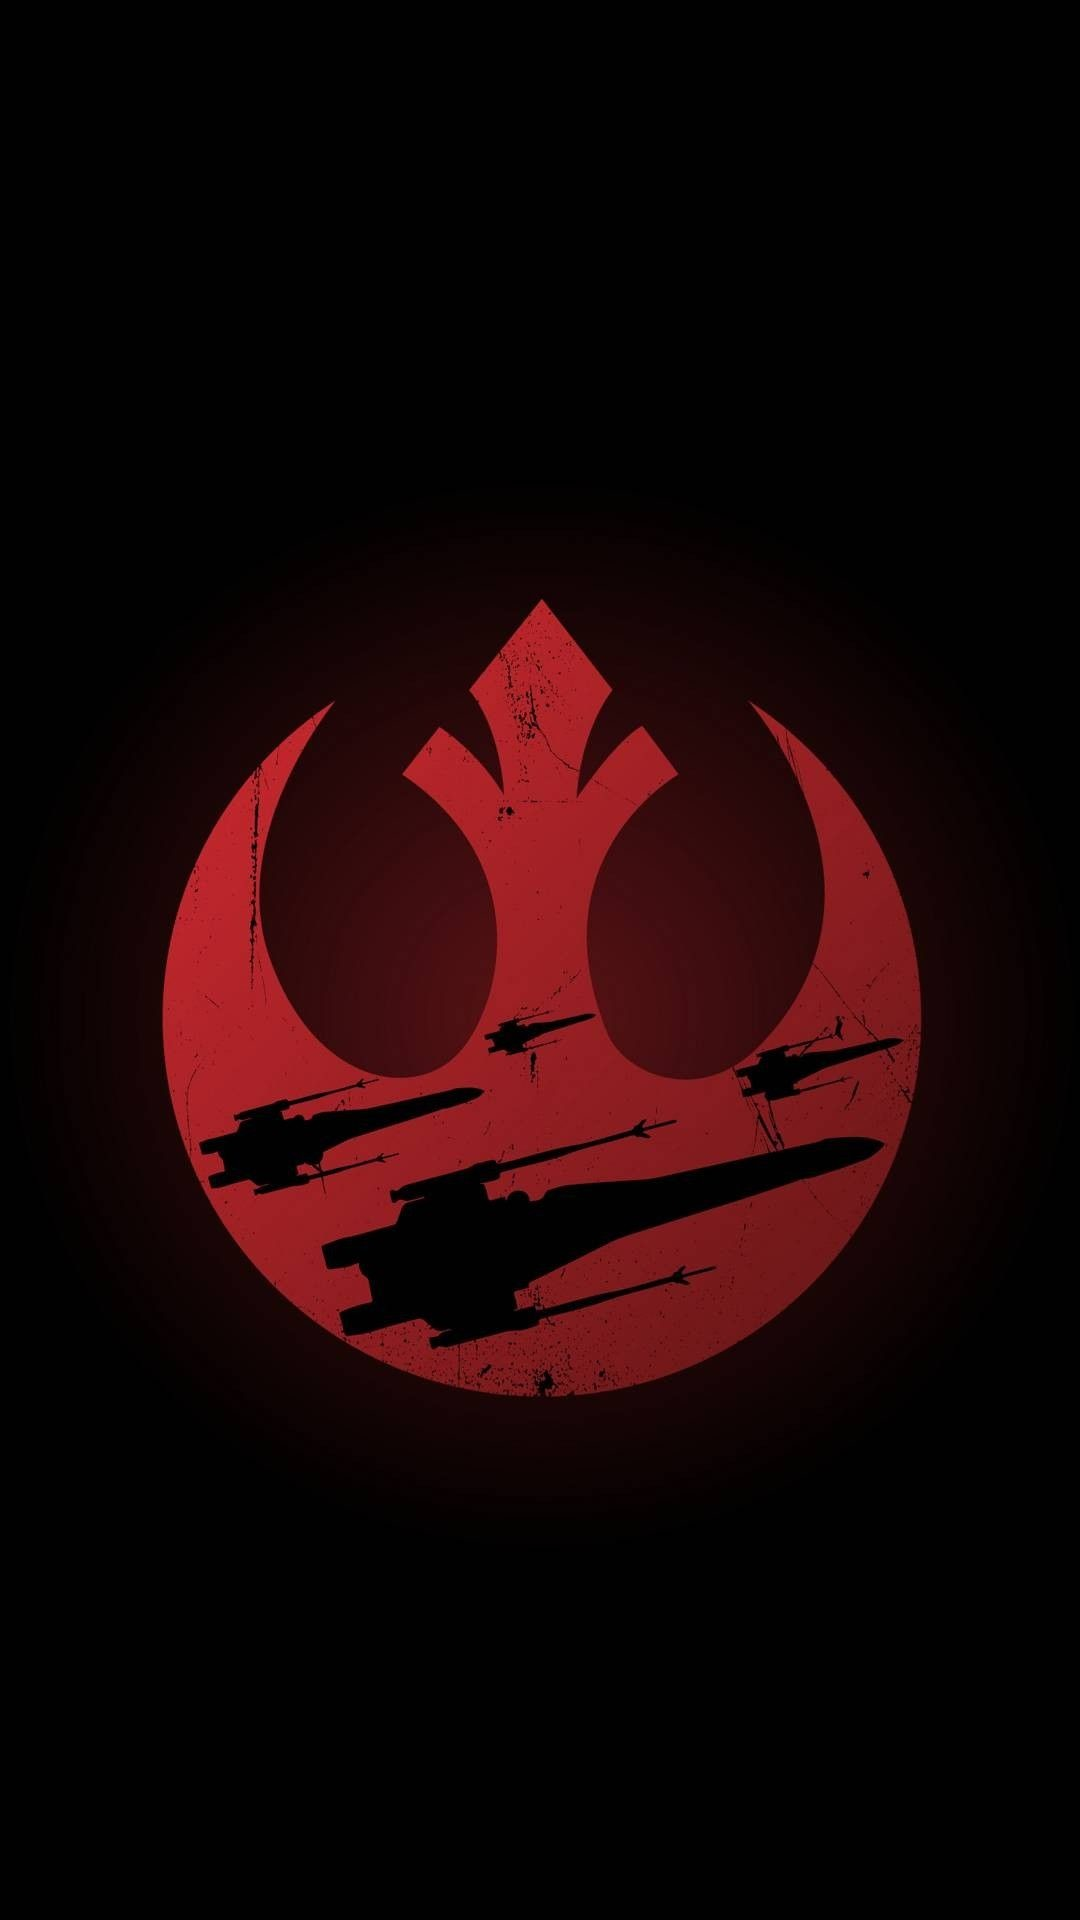 Star Wars Wallpaper For Iphone Posted By Michelle Sellers